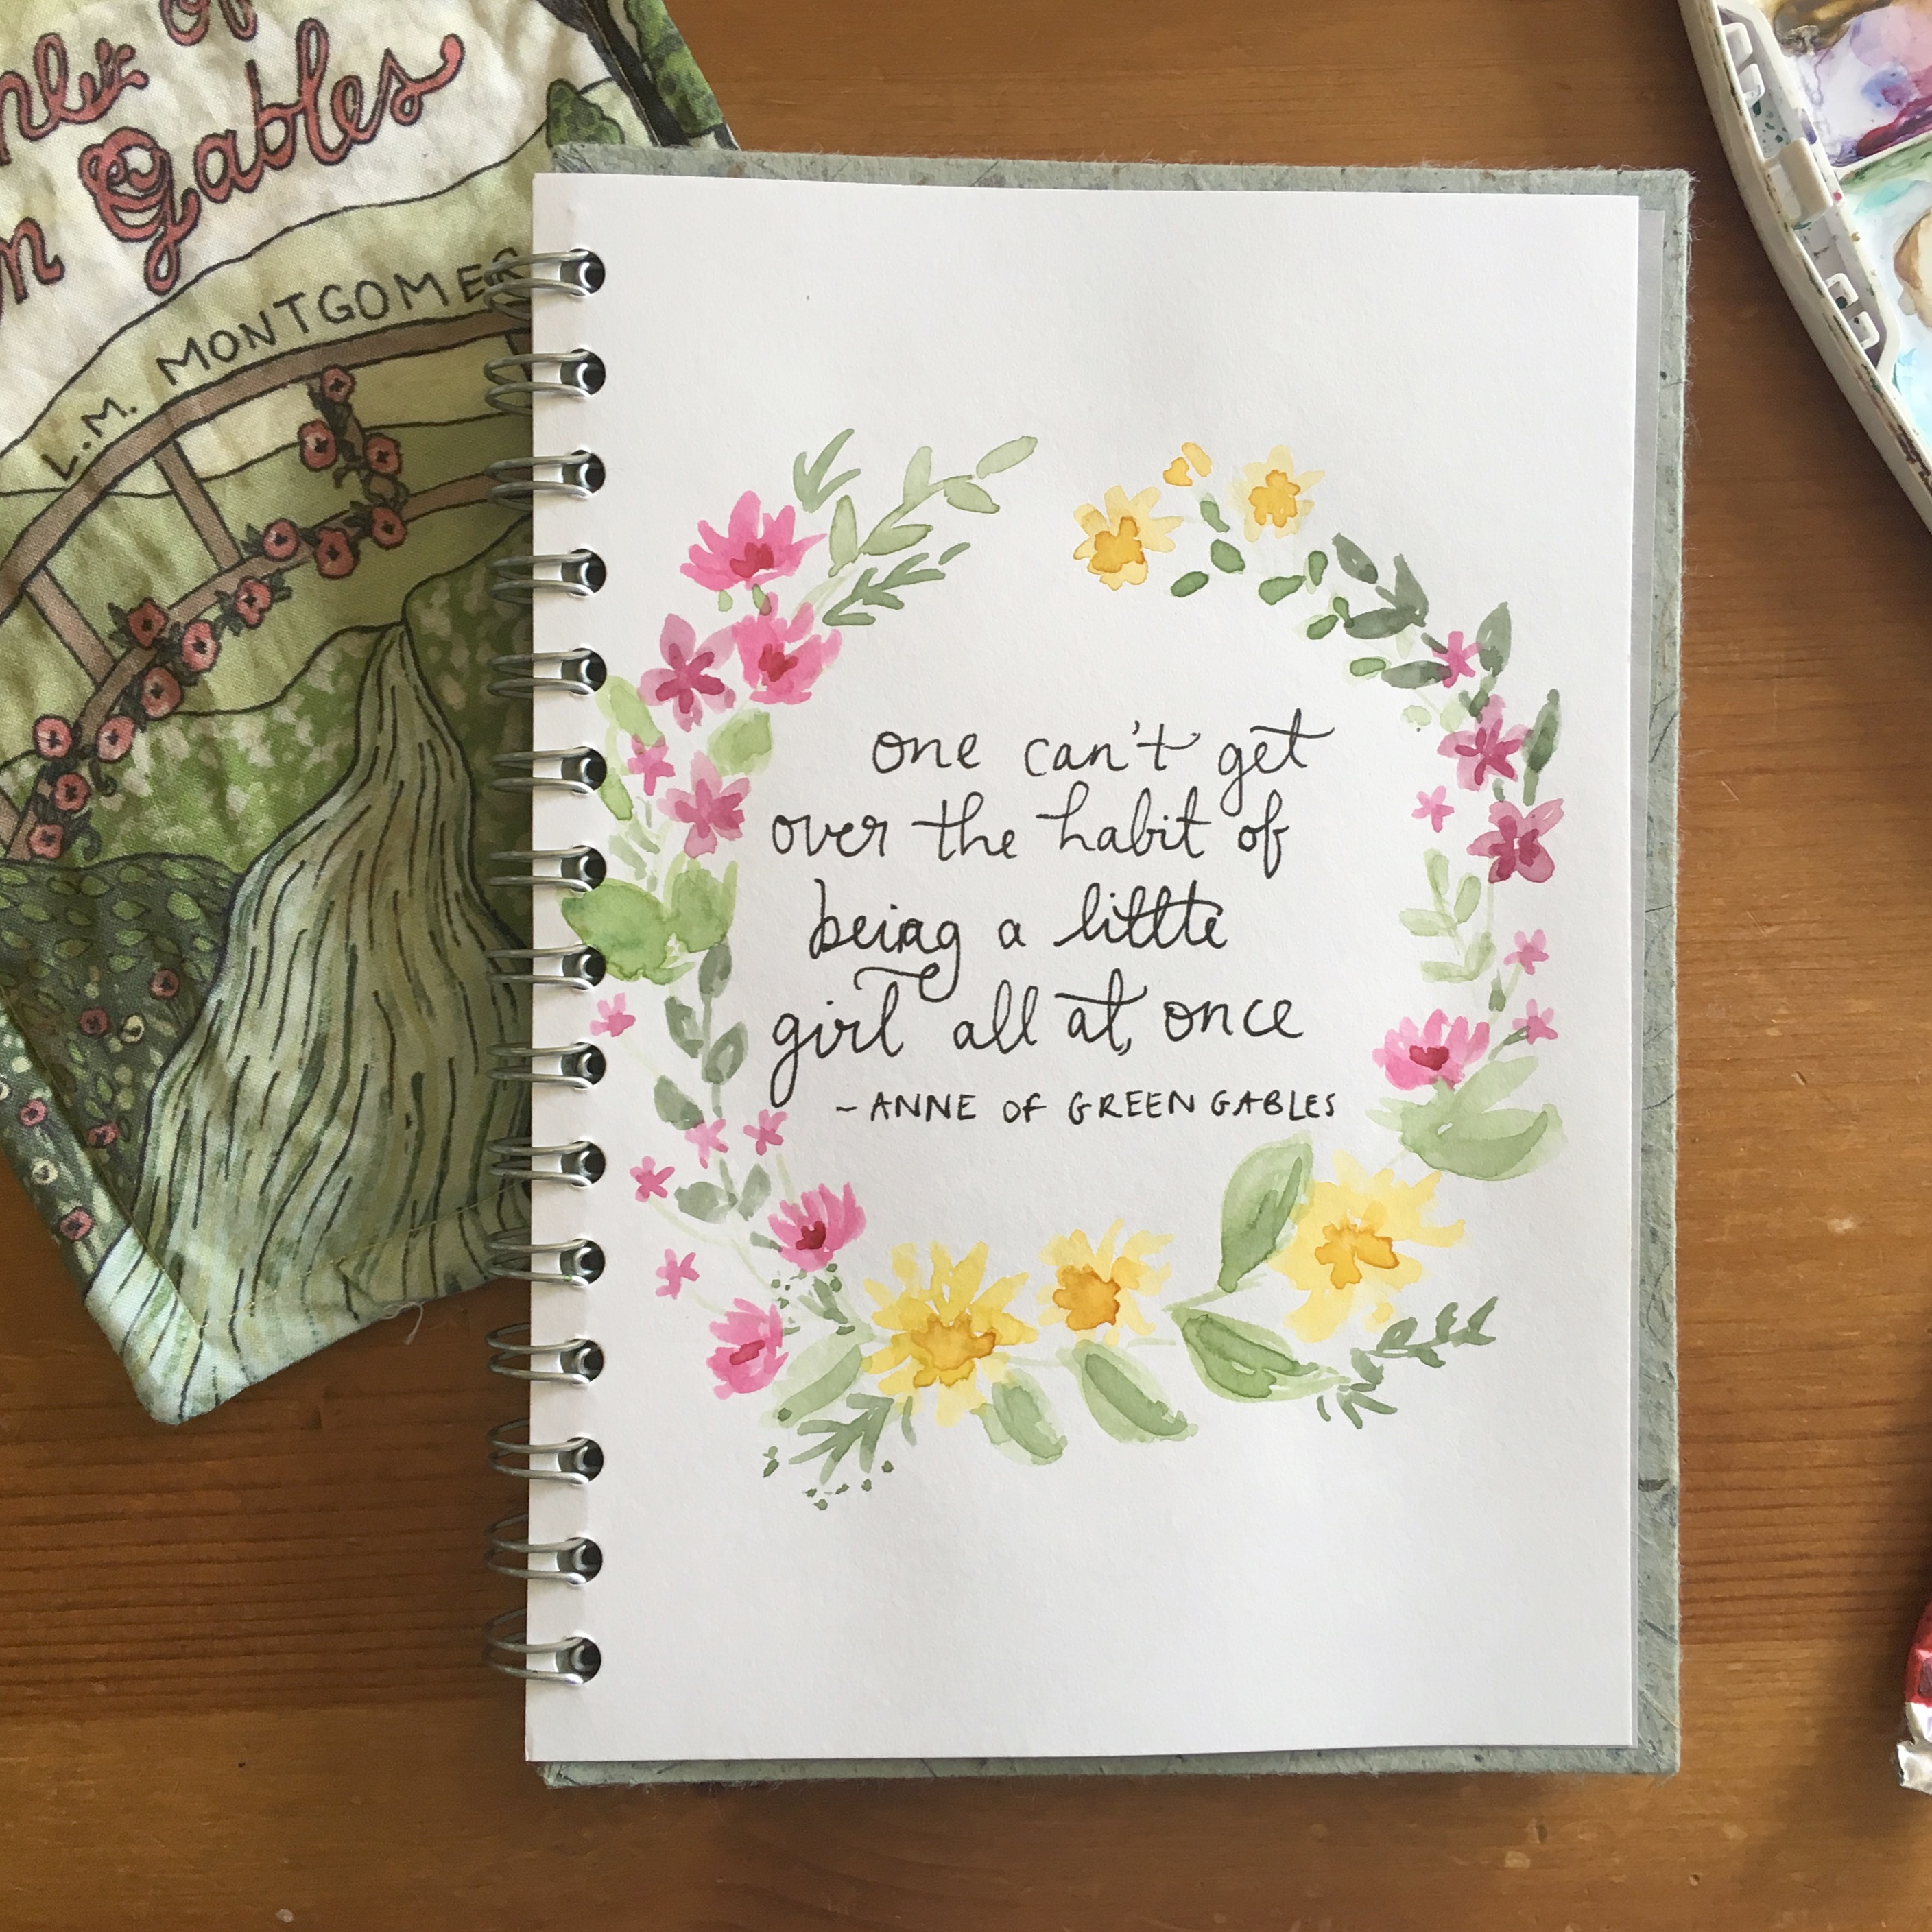 100 days of flowers and prose | Anne of green gables quotes